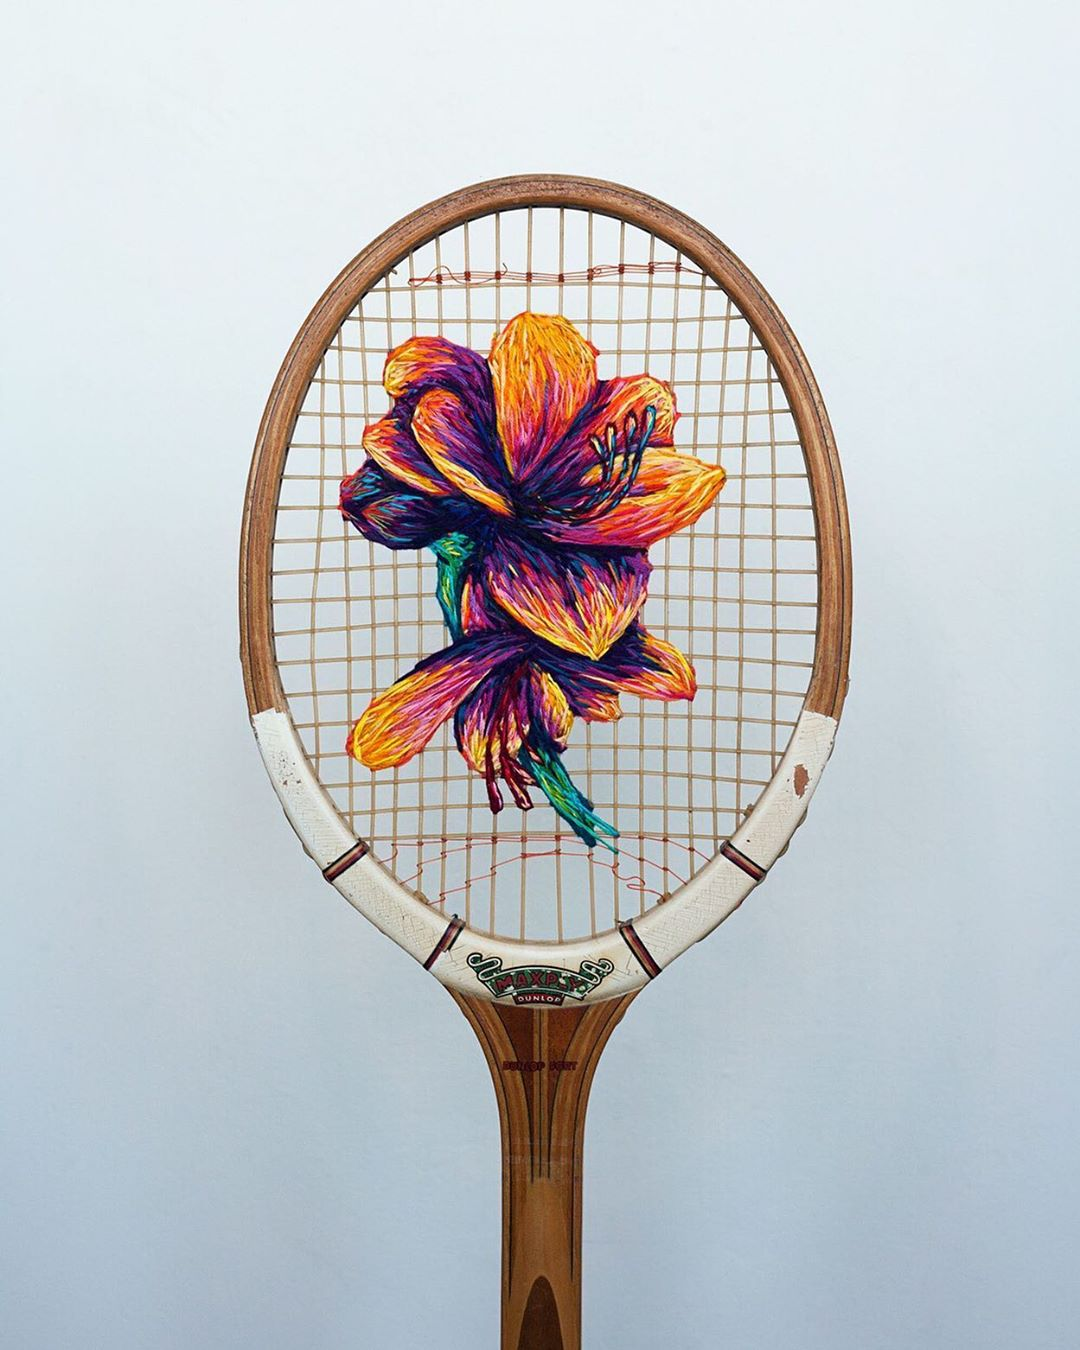 Colorful Embroideries on Discarded Tennis Rackets Are Serving Beautiful Blooms